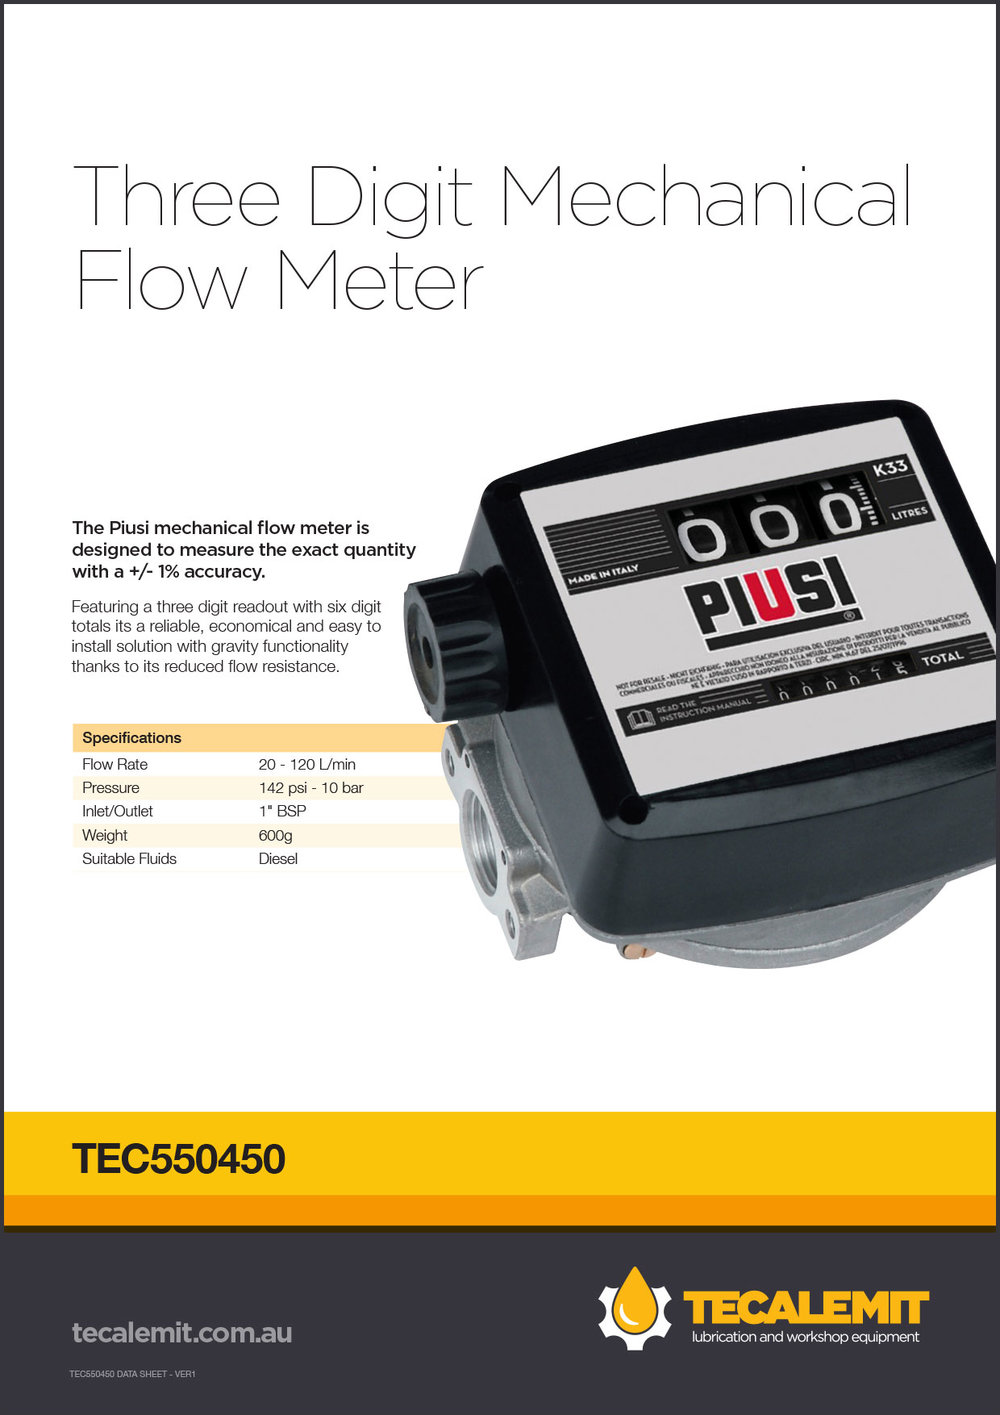 TEC550450 Product Info